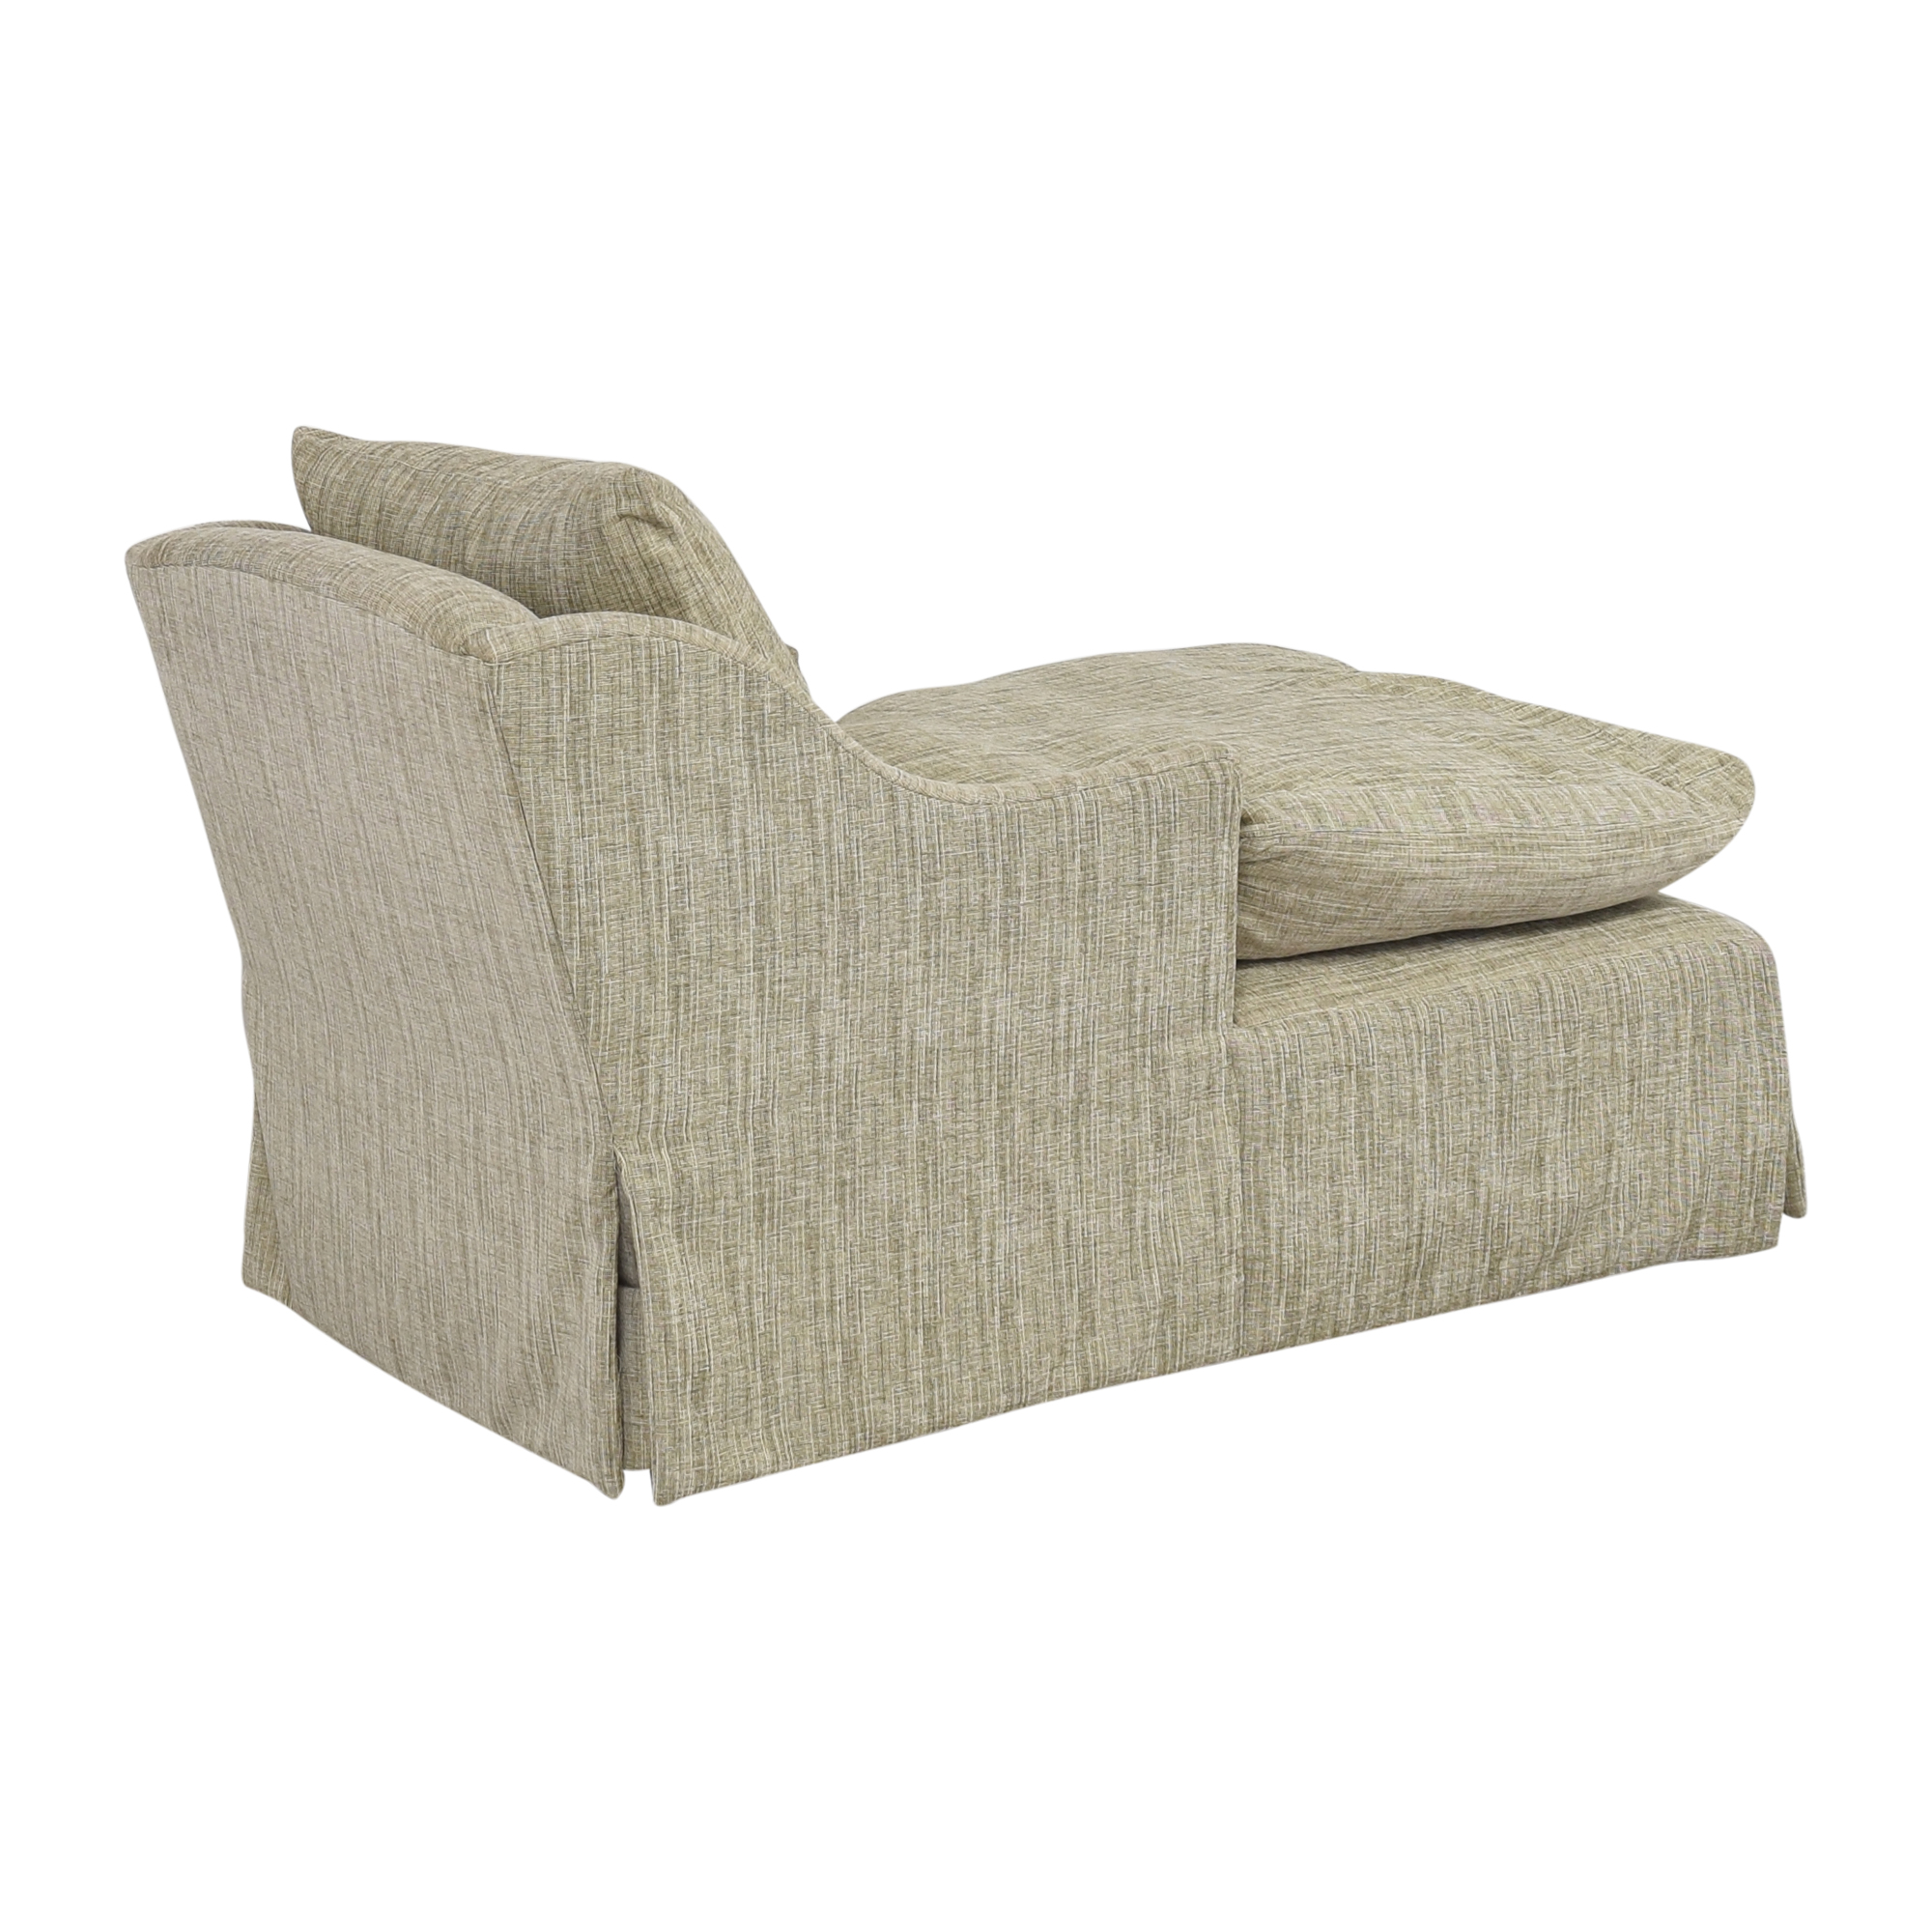 Country Willow Country Willow Evalani Slipcovered Chaise beige